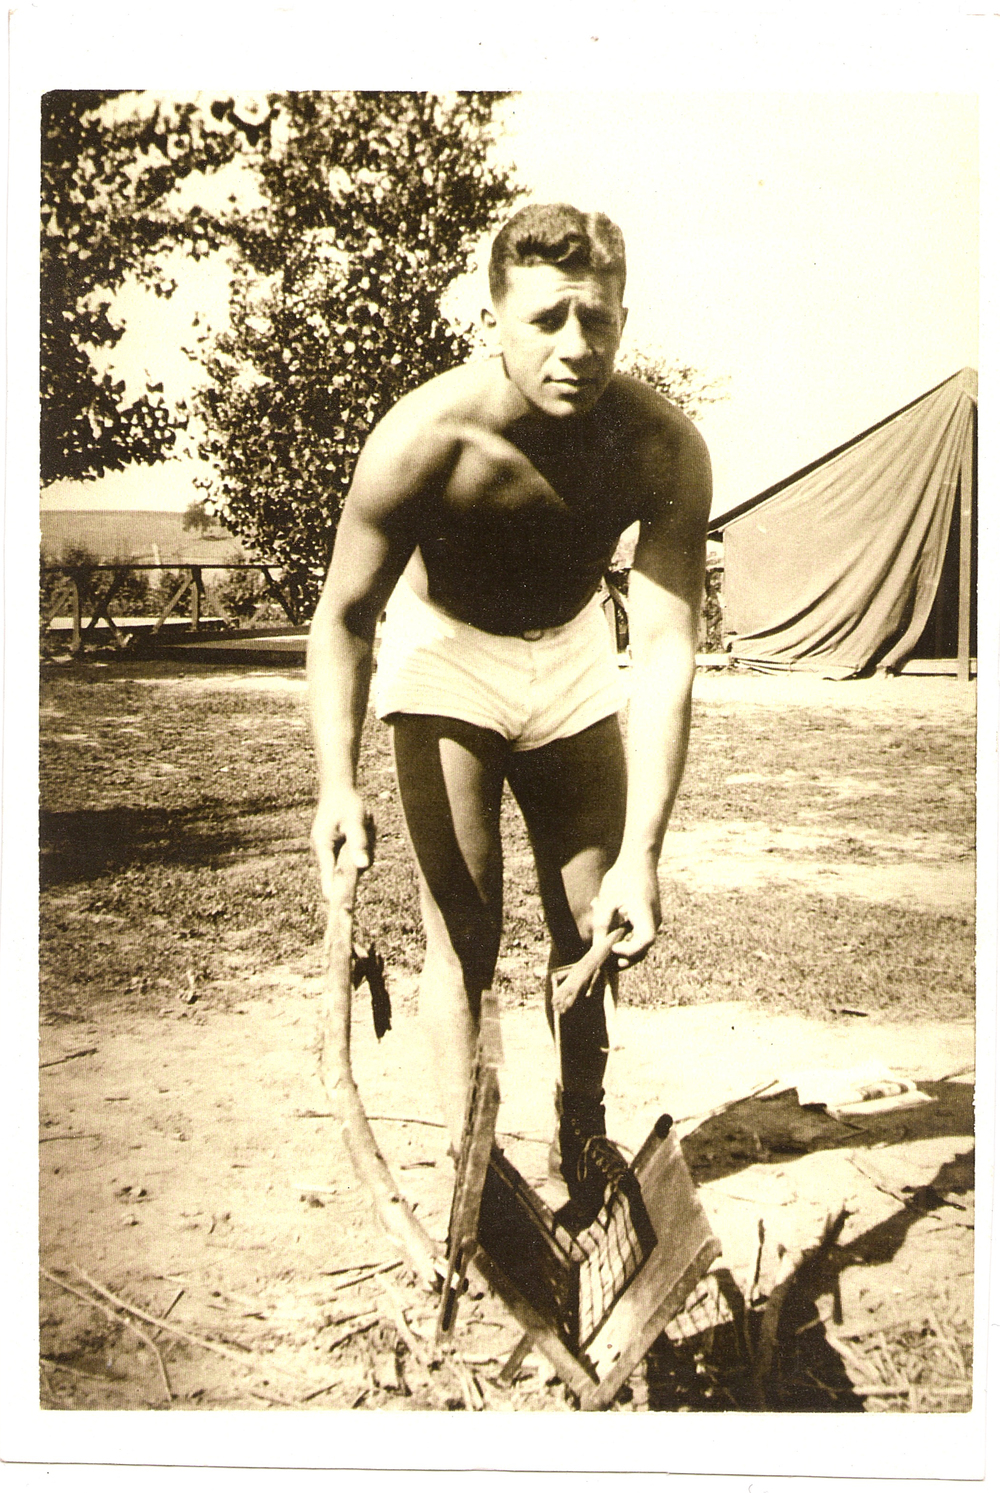 My Dad, Joseph Bello Snyder, who was a basketball player for the ABA and a referee for the NCAA, the owner of Camp Eagle Cove in Inlet, NY for nearly 50 years. He was also a huge proponent of exercise through every stage of his life.